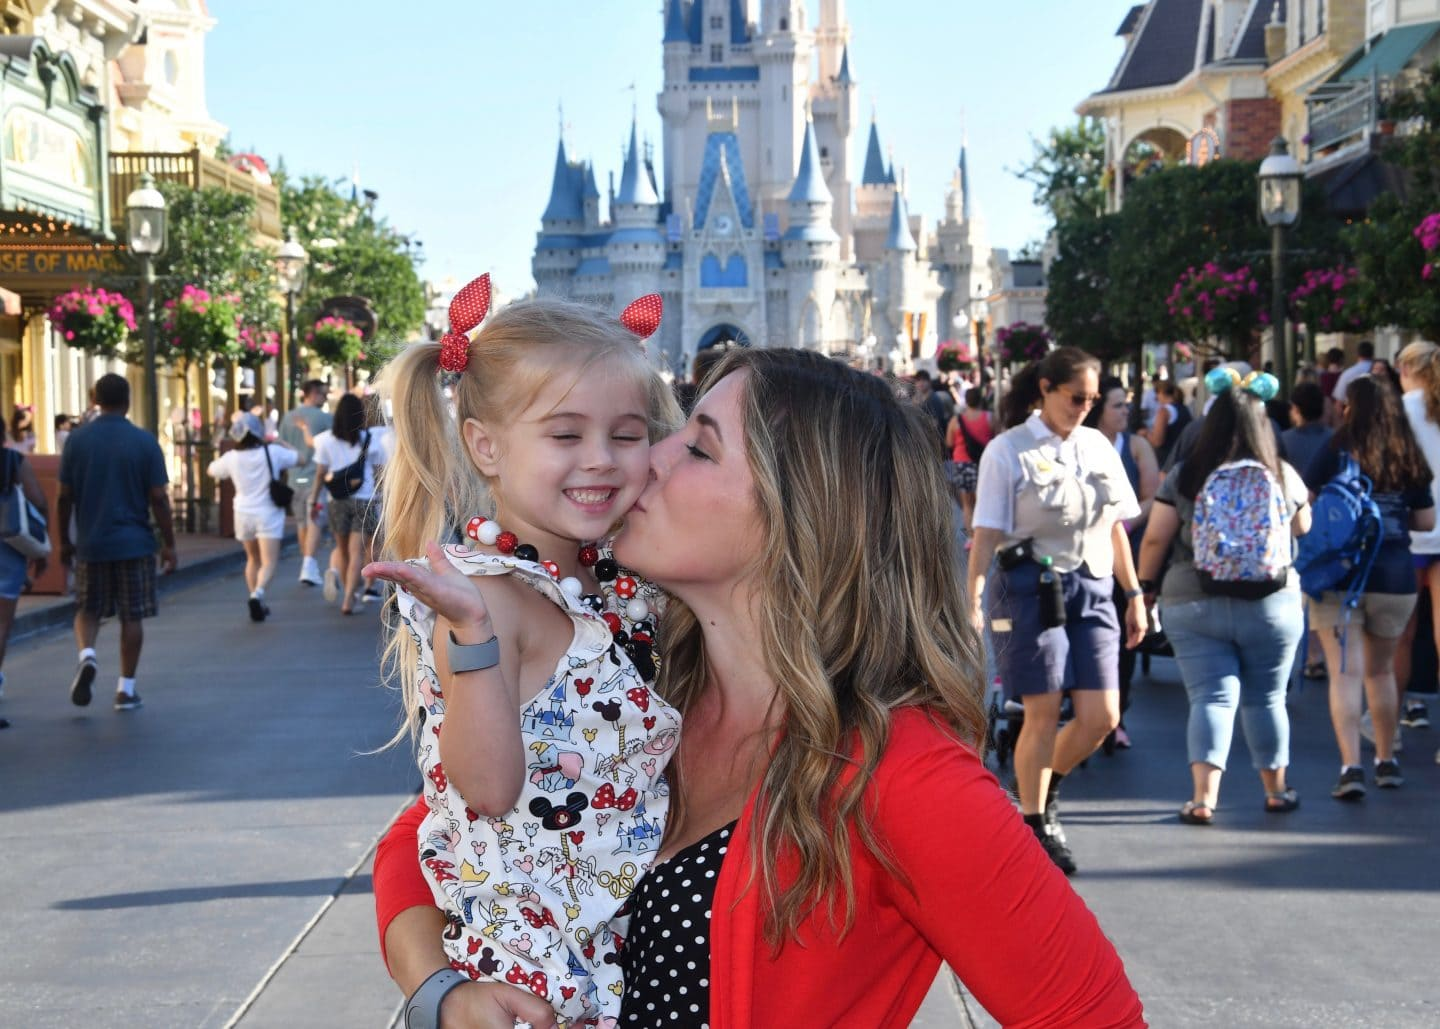 Mommy and Tess Trip: Morning at Magic Kingdom